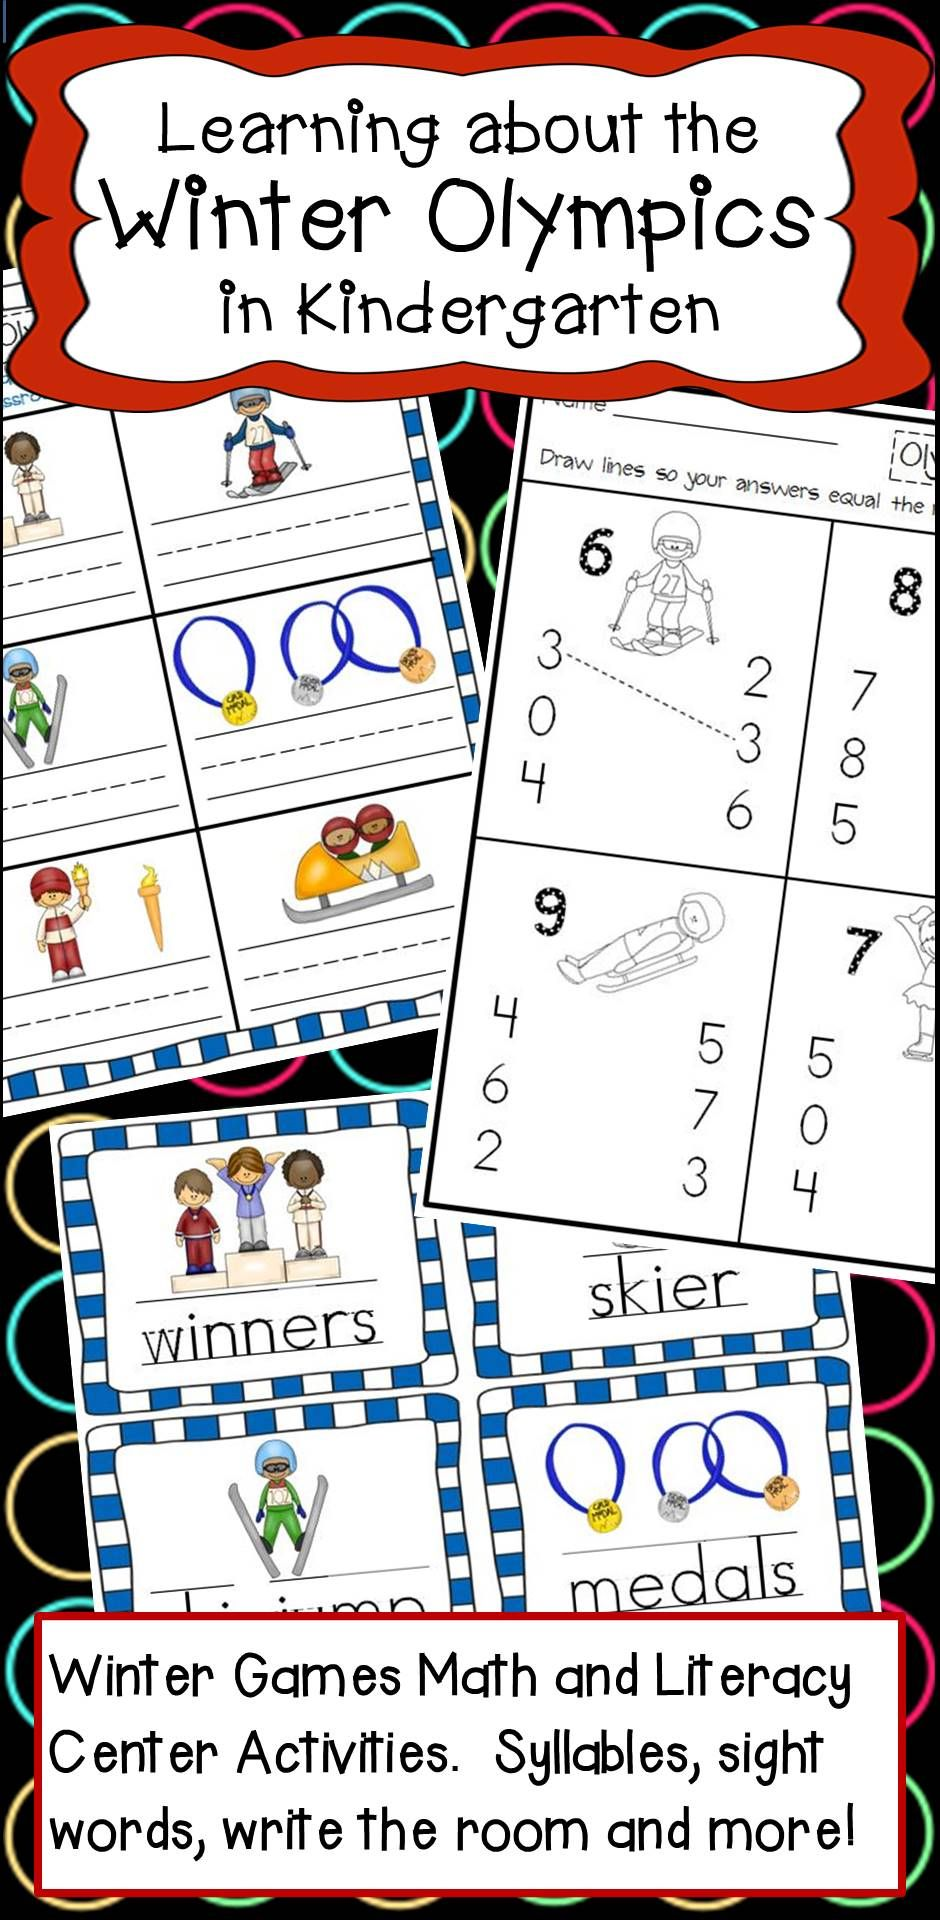 Kindergarten learning about the winter olympics math and literacy kindergarten learning about the winter olympics math and literacy activities buycottarizona Image collections